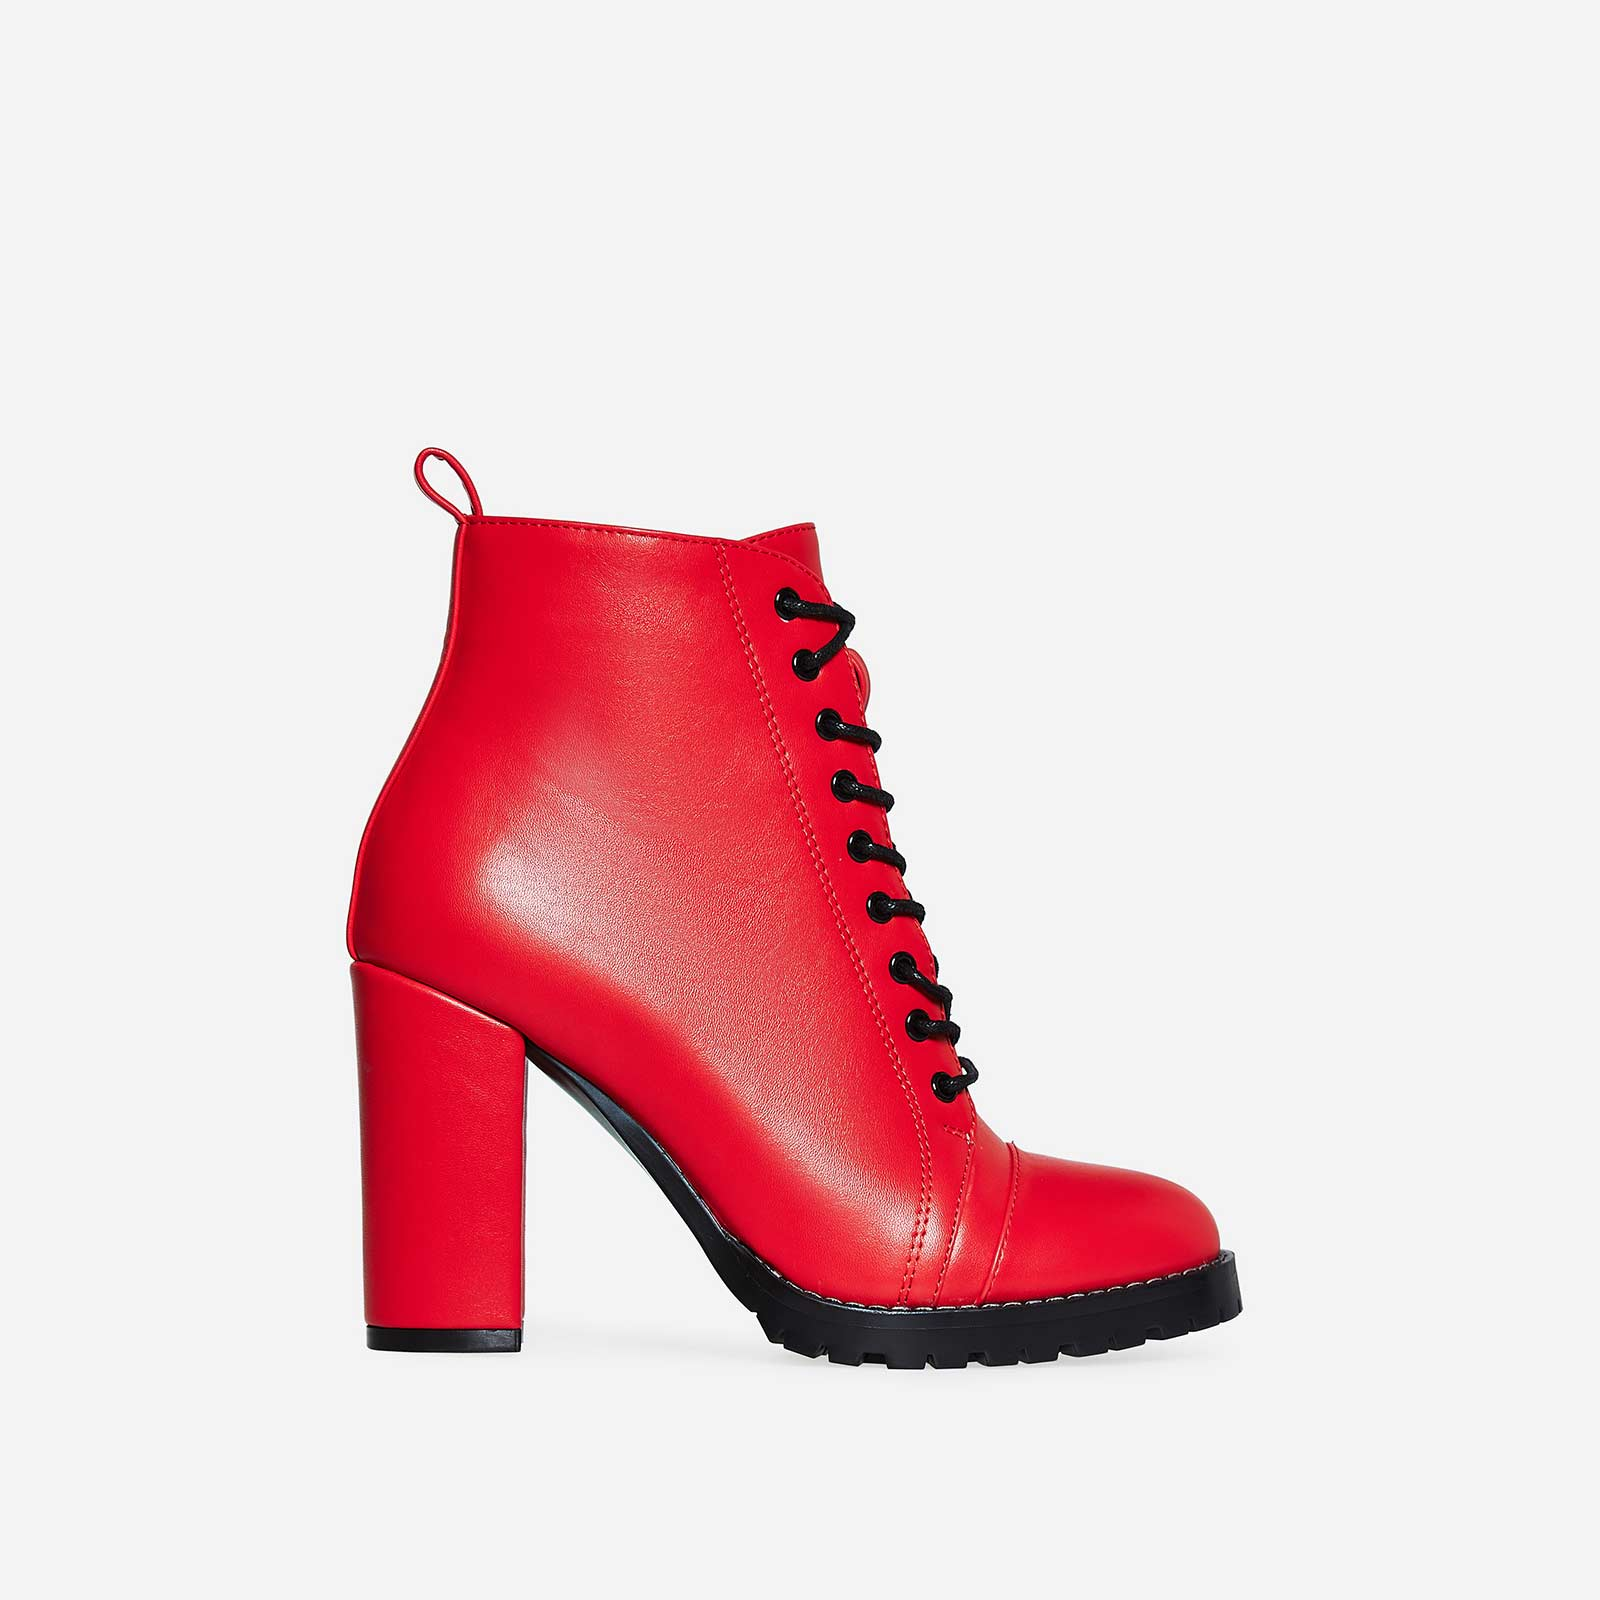 Kennedy Lace Up Platform Biker Boot In Red Faux Leather